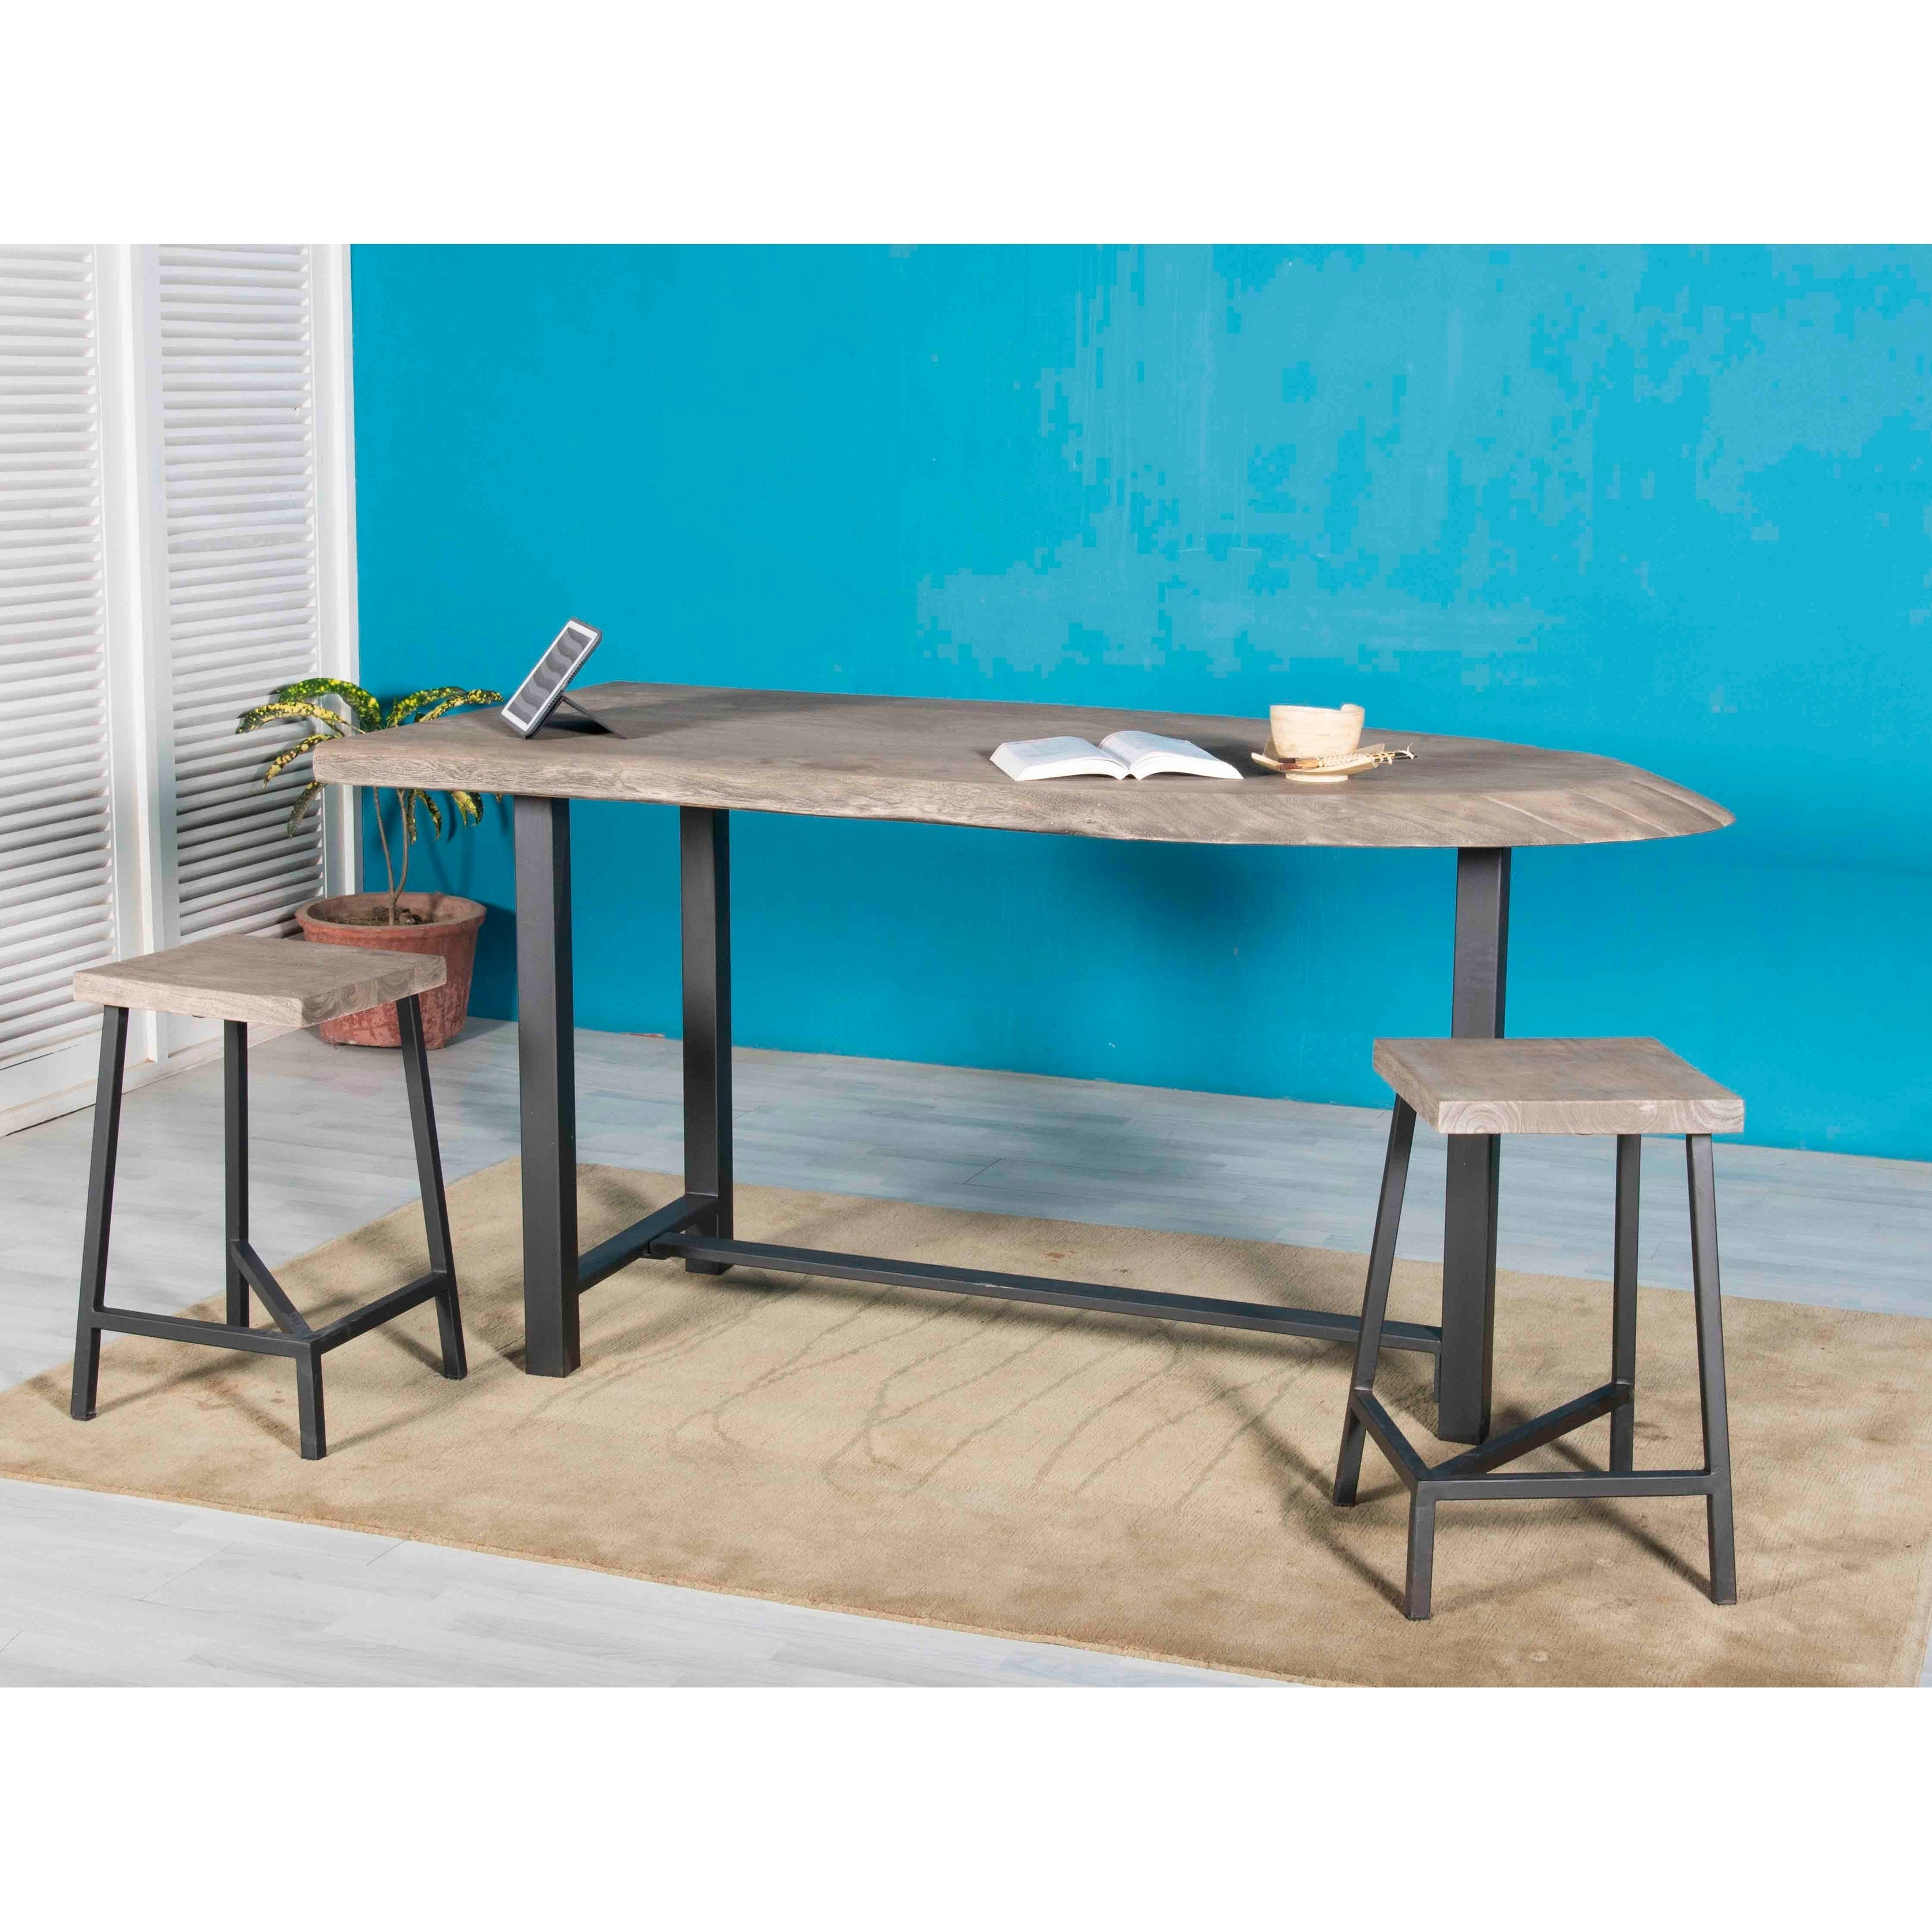 Shop Counter Height Dining Table - Ships in 2 Cartons - Grey - N/A ...